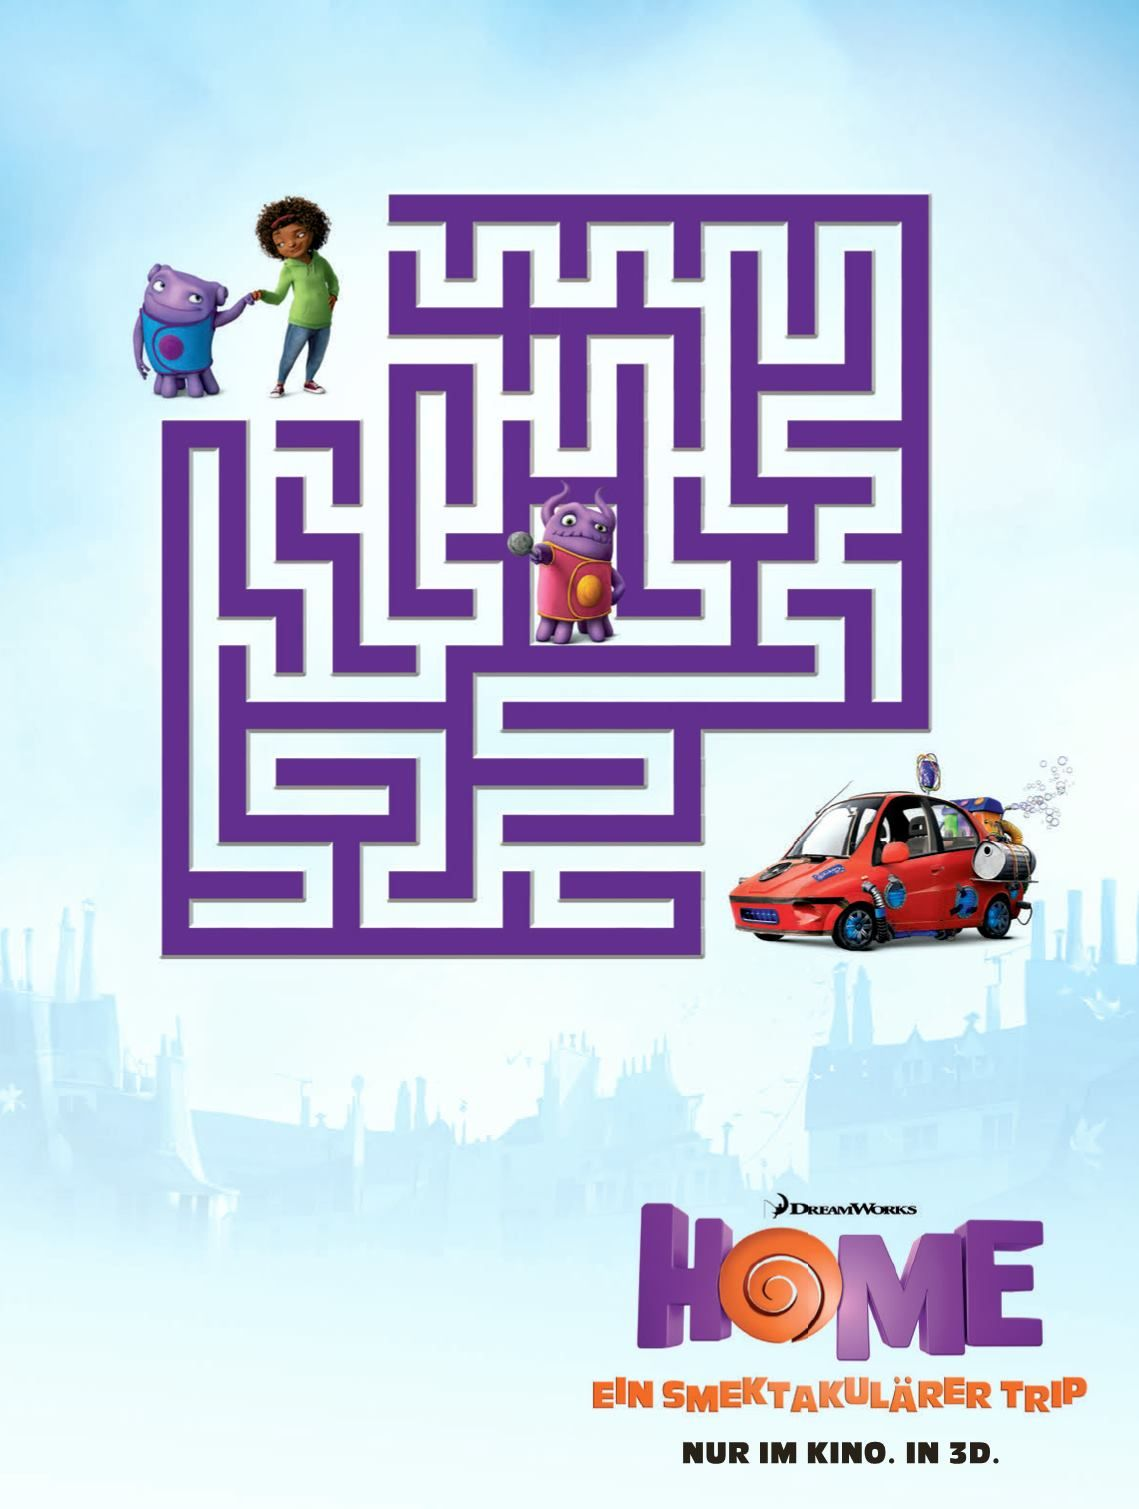 can you find through the maze in dreamworks animation s new movie